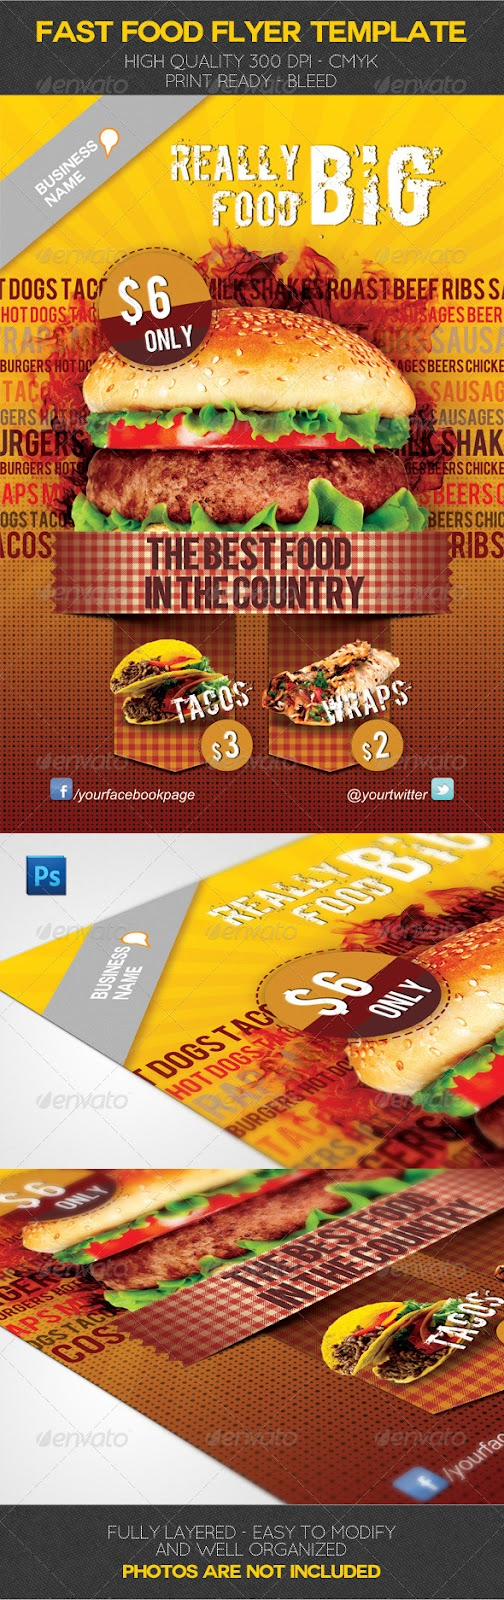 Get Honey Free Templates 4 U Graphicriver Fast Food Flyer Template